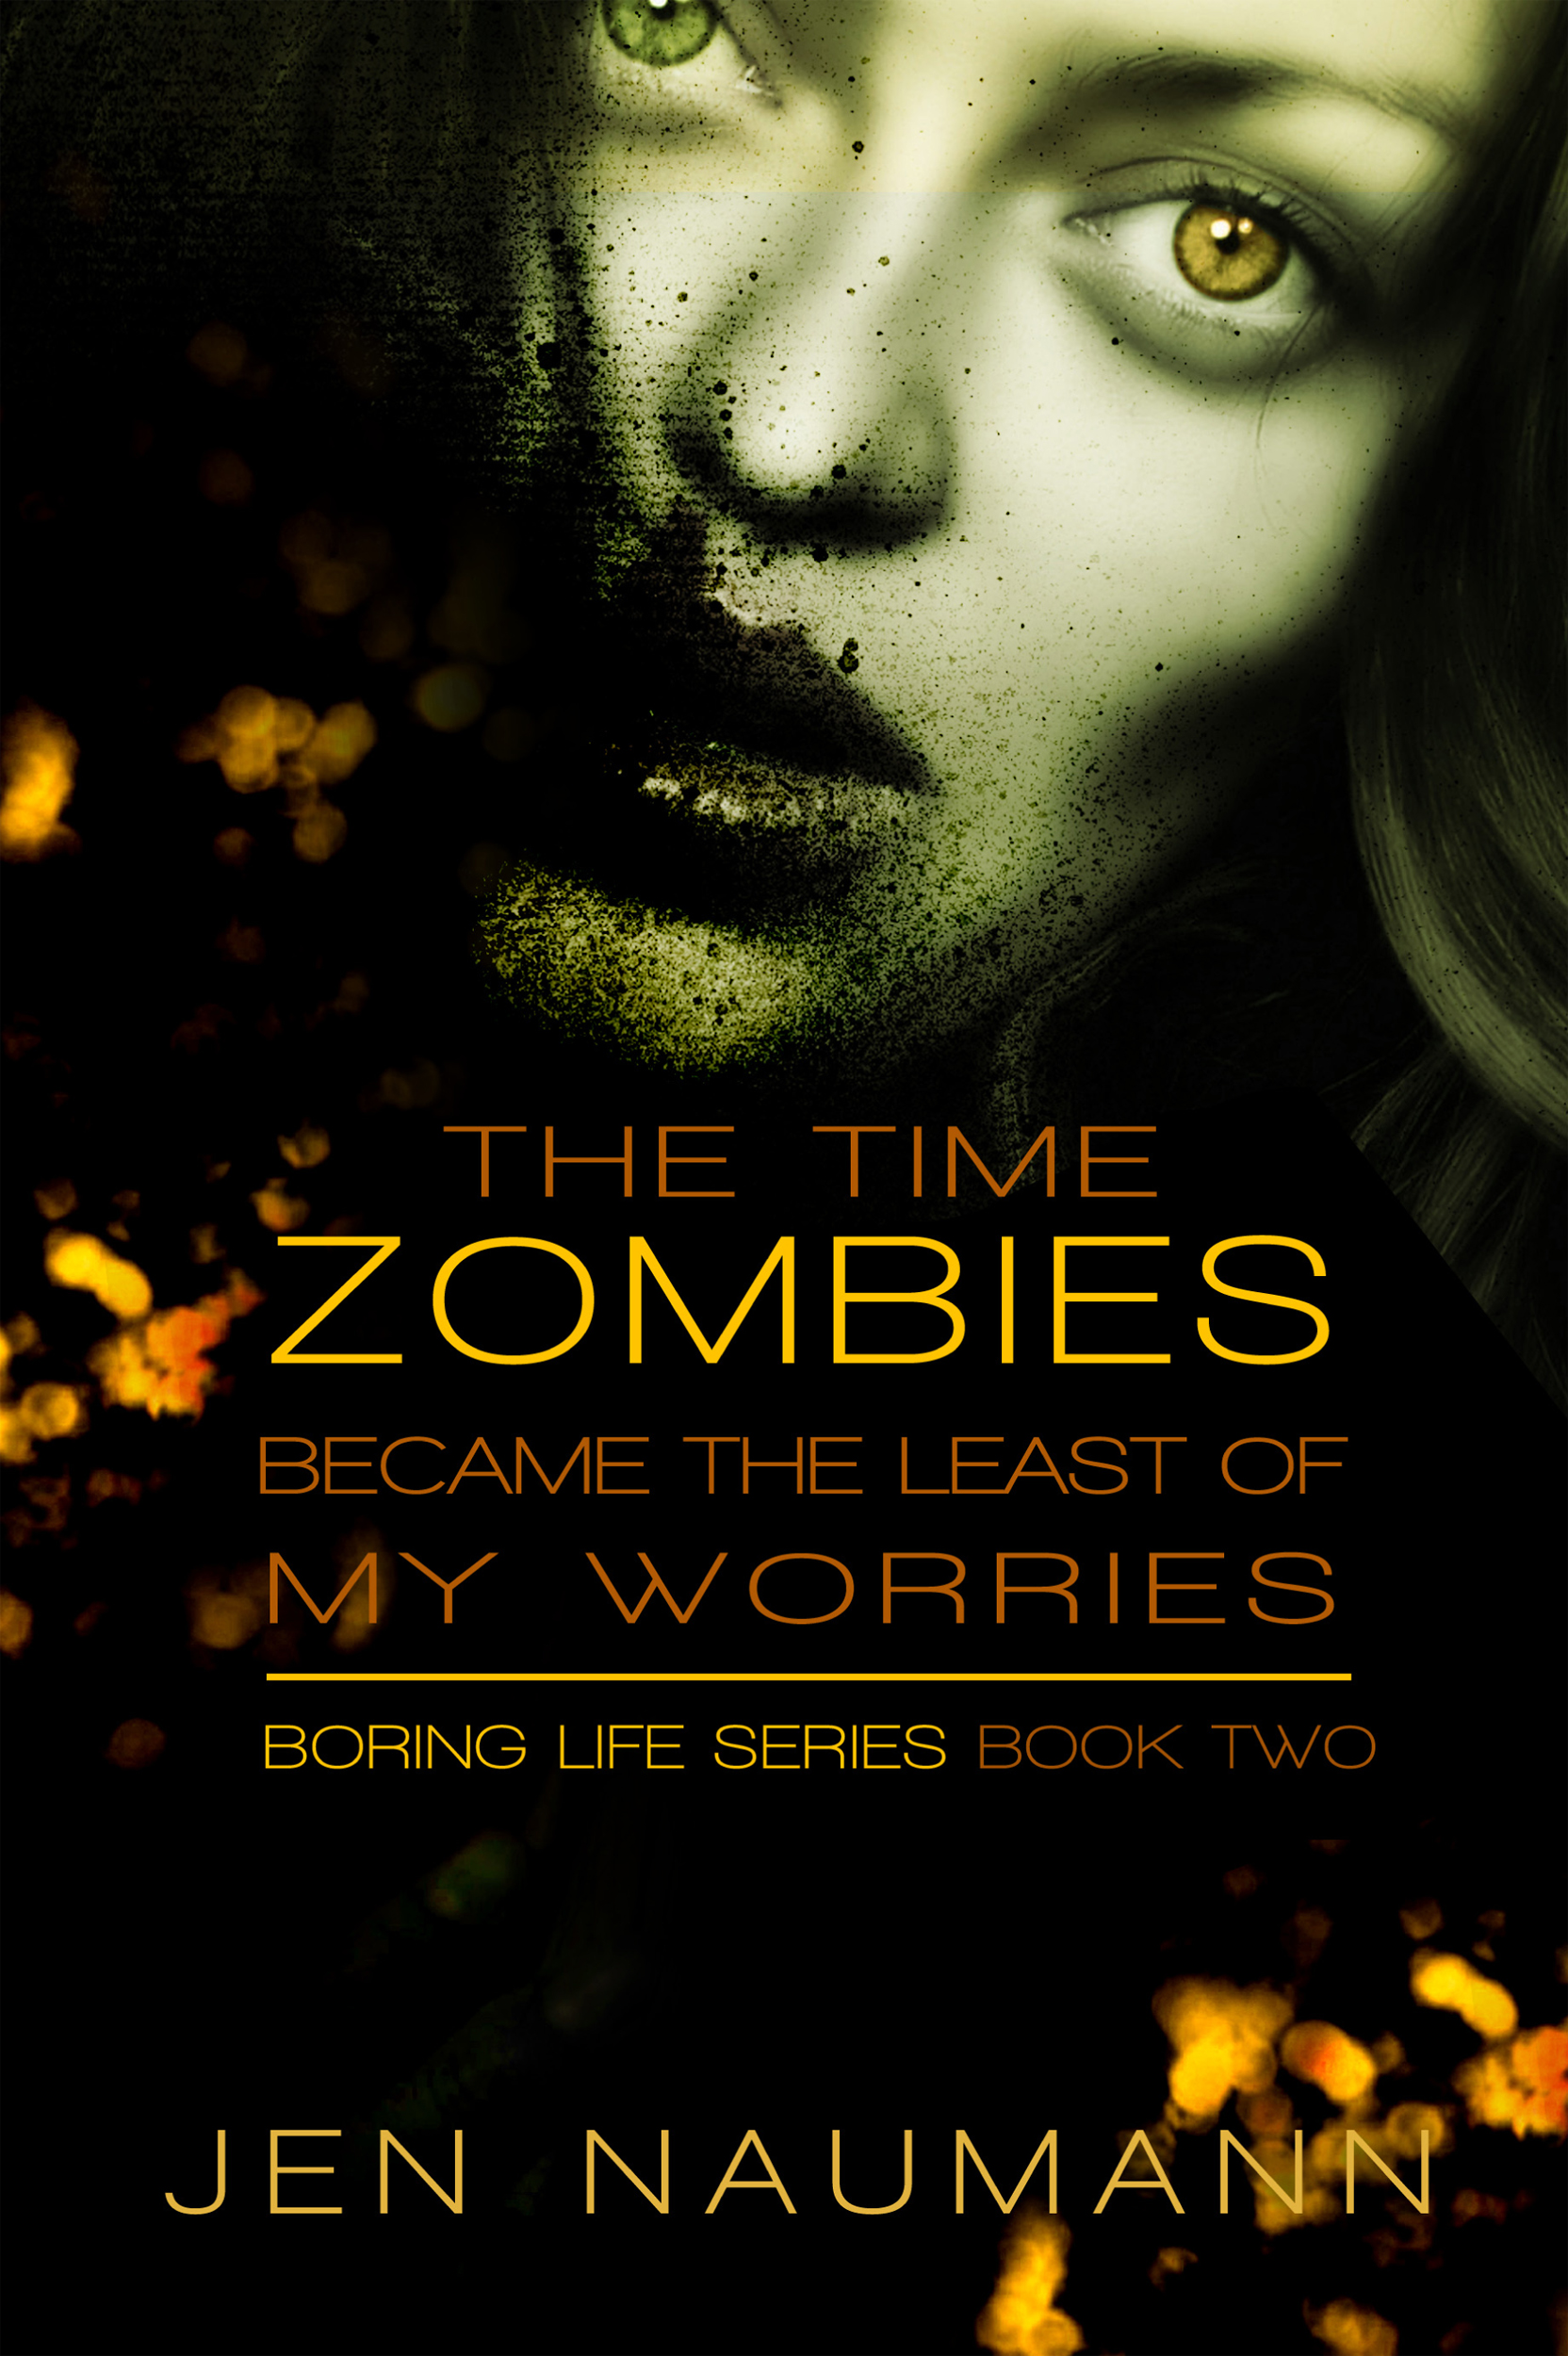 Zombies (book #2)